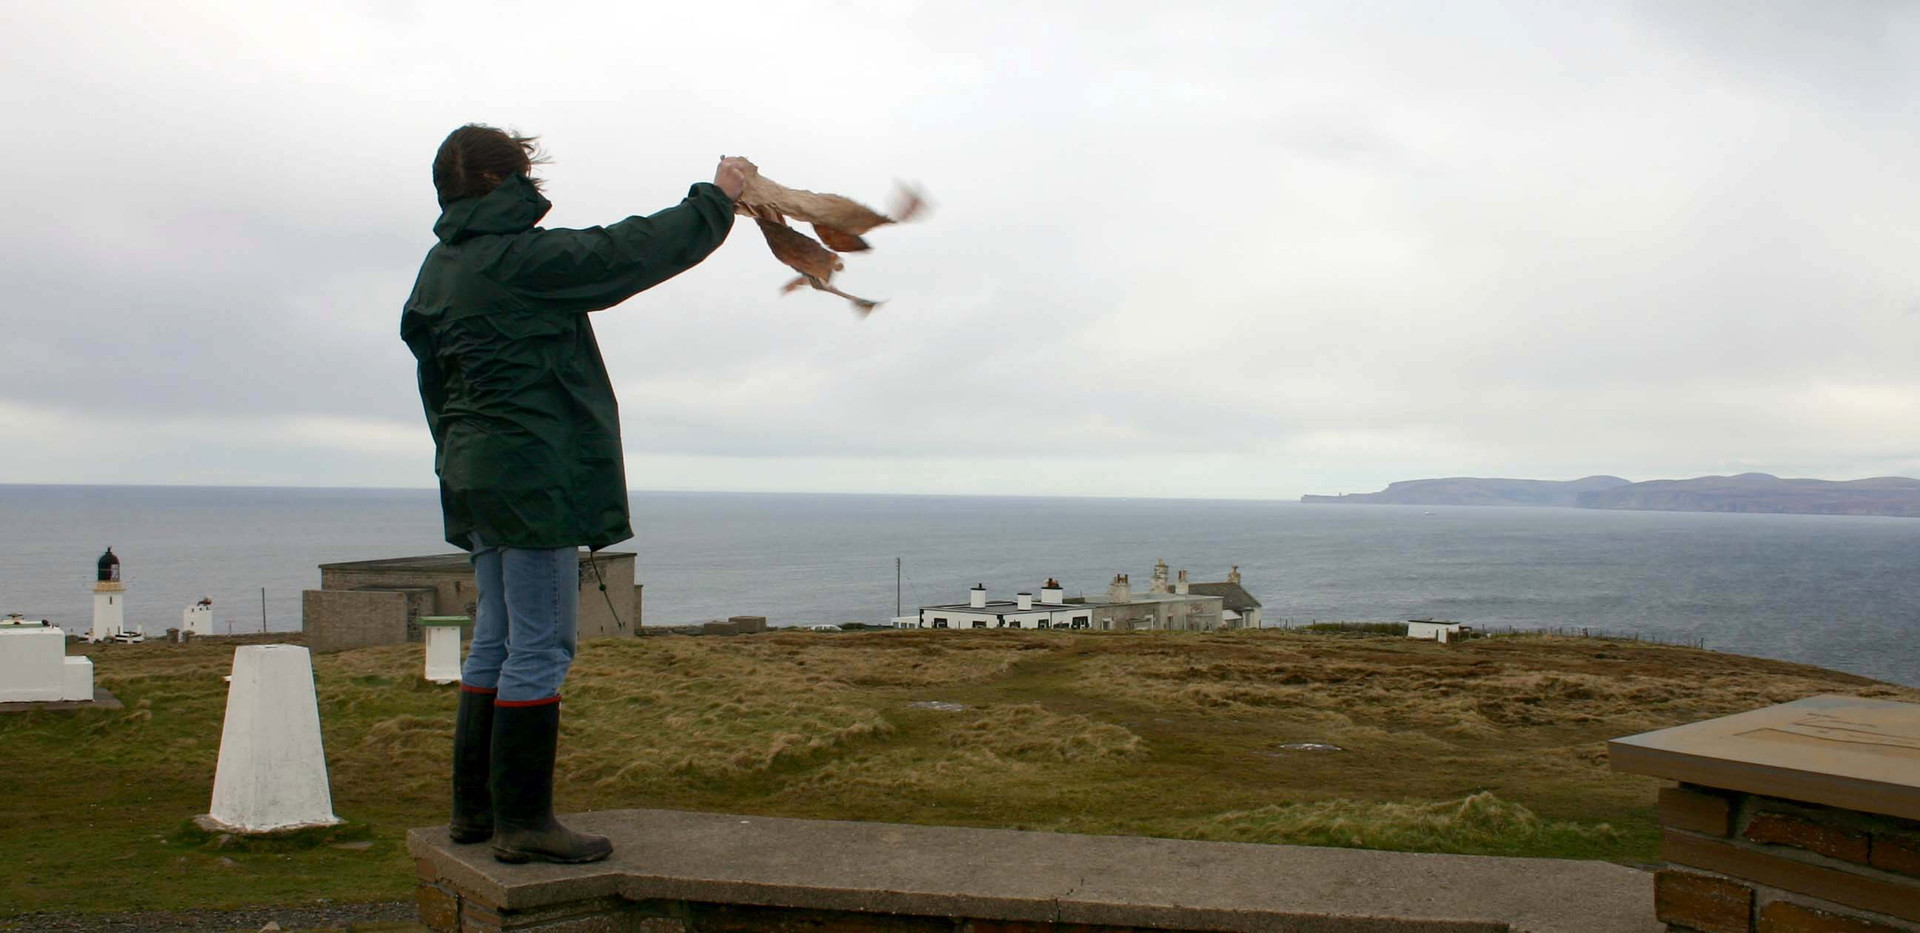 Buying the wind – wise women and the wind folklore.